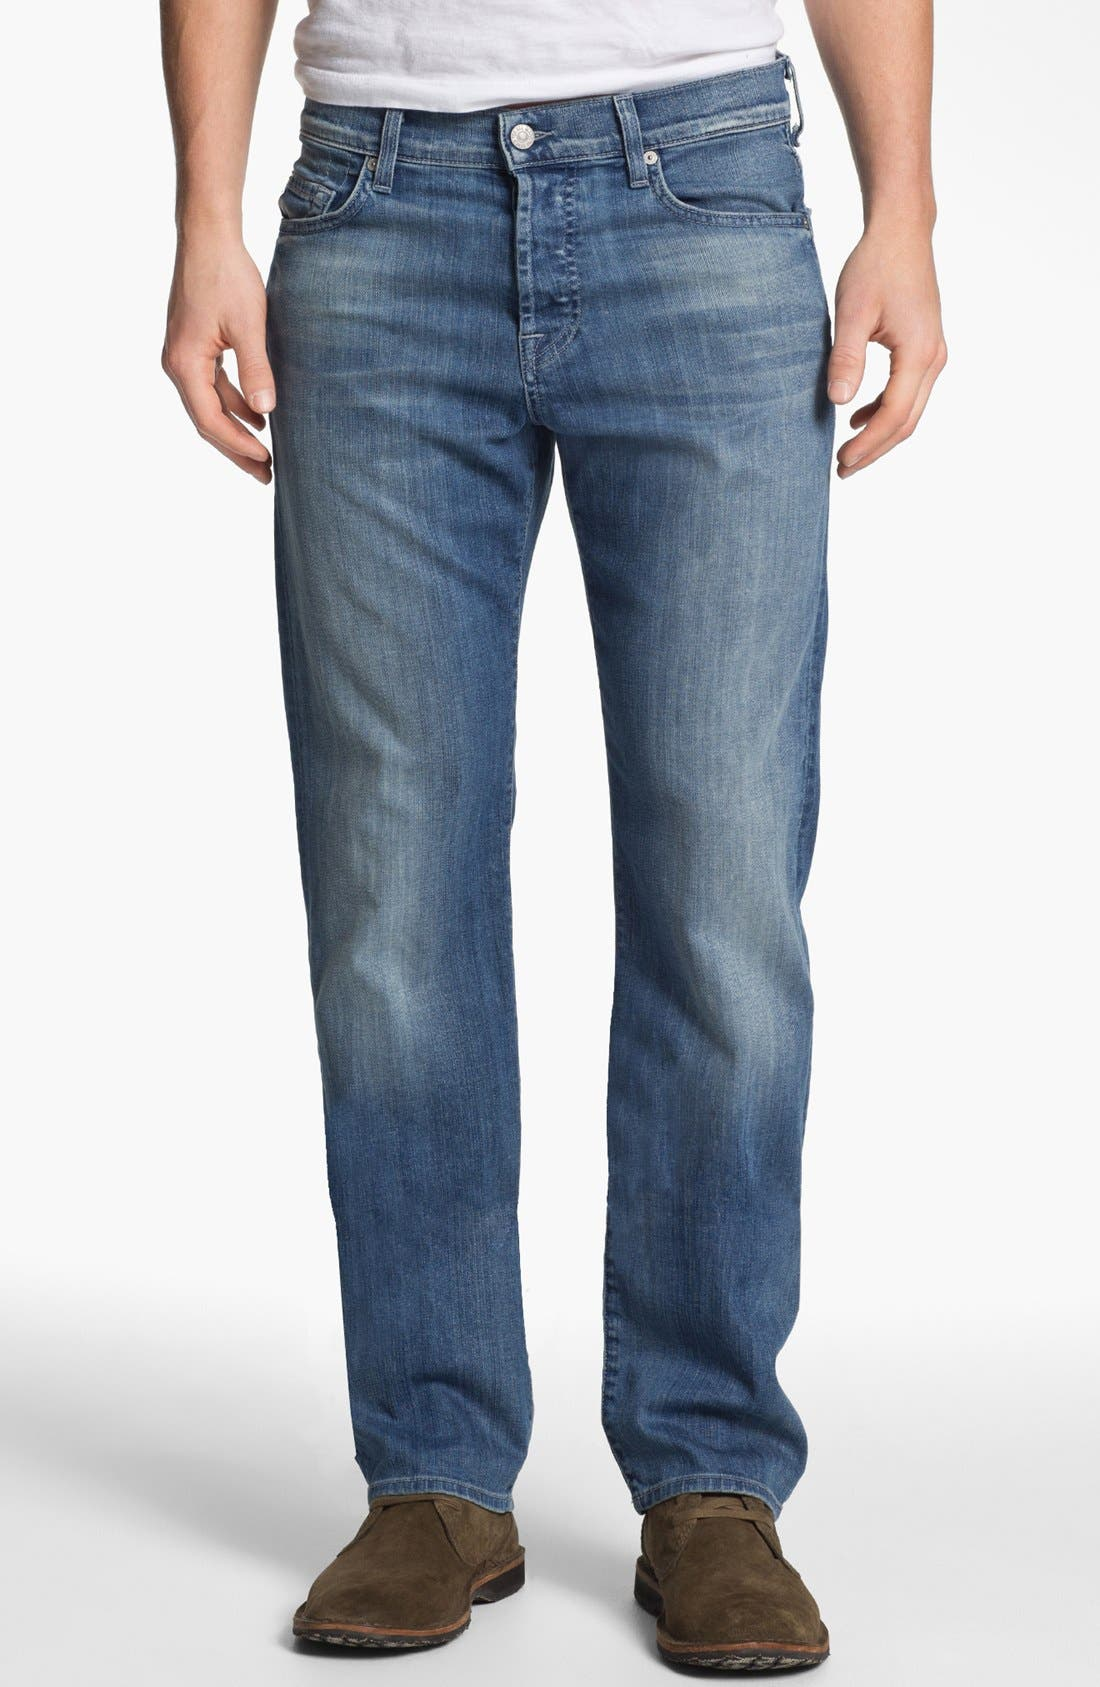 Main Image - 7 For All Mankind® 'Standard' Straight Leg Jeans (Washed Out)